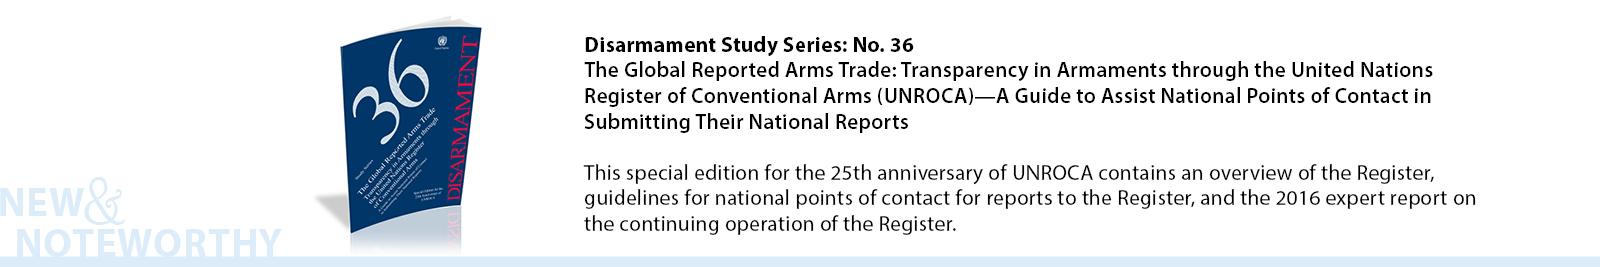 Disarmament Study Series: No. 36 - The Global Reported Arms Trade: Transparency in Armaments through the United Nations Register of Conventional Arms (UNROCA)—A Guide to Assist National Points of Contact in Submitting Their National Reports - This special edition for the 25th anniversary of UNROCA contains an overview of the Register, guidelines for national points of contact for reports to the Register, and the 2016 expert report on the continuing operation of the Register.